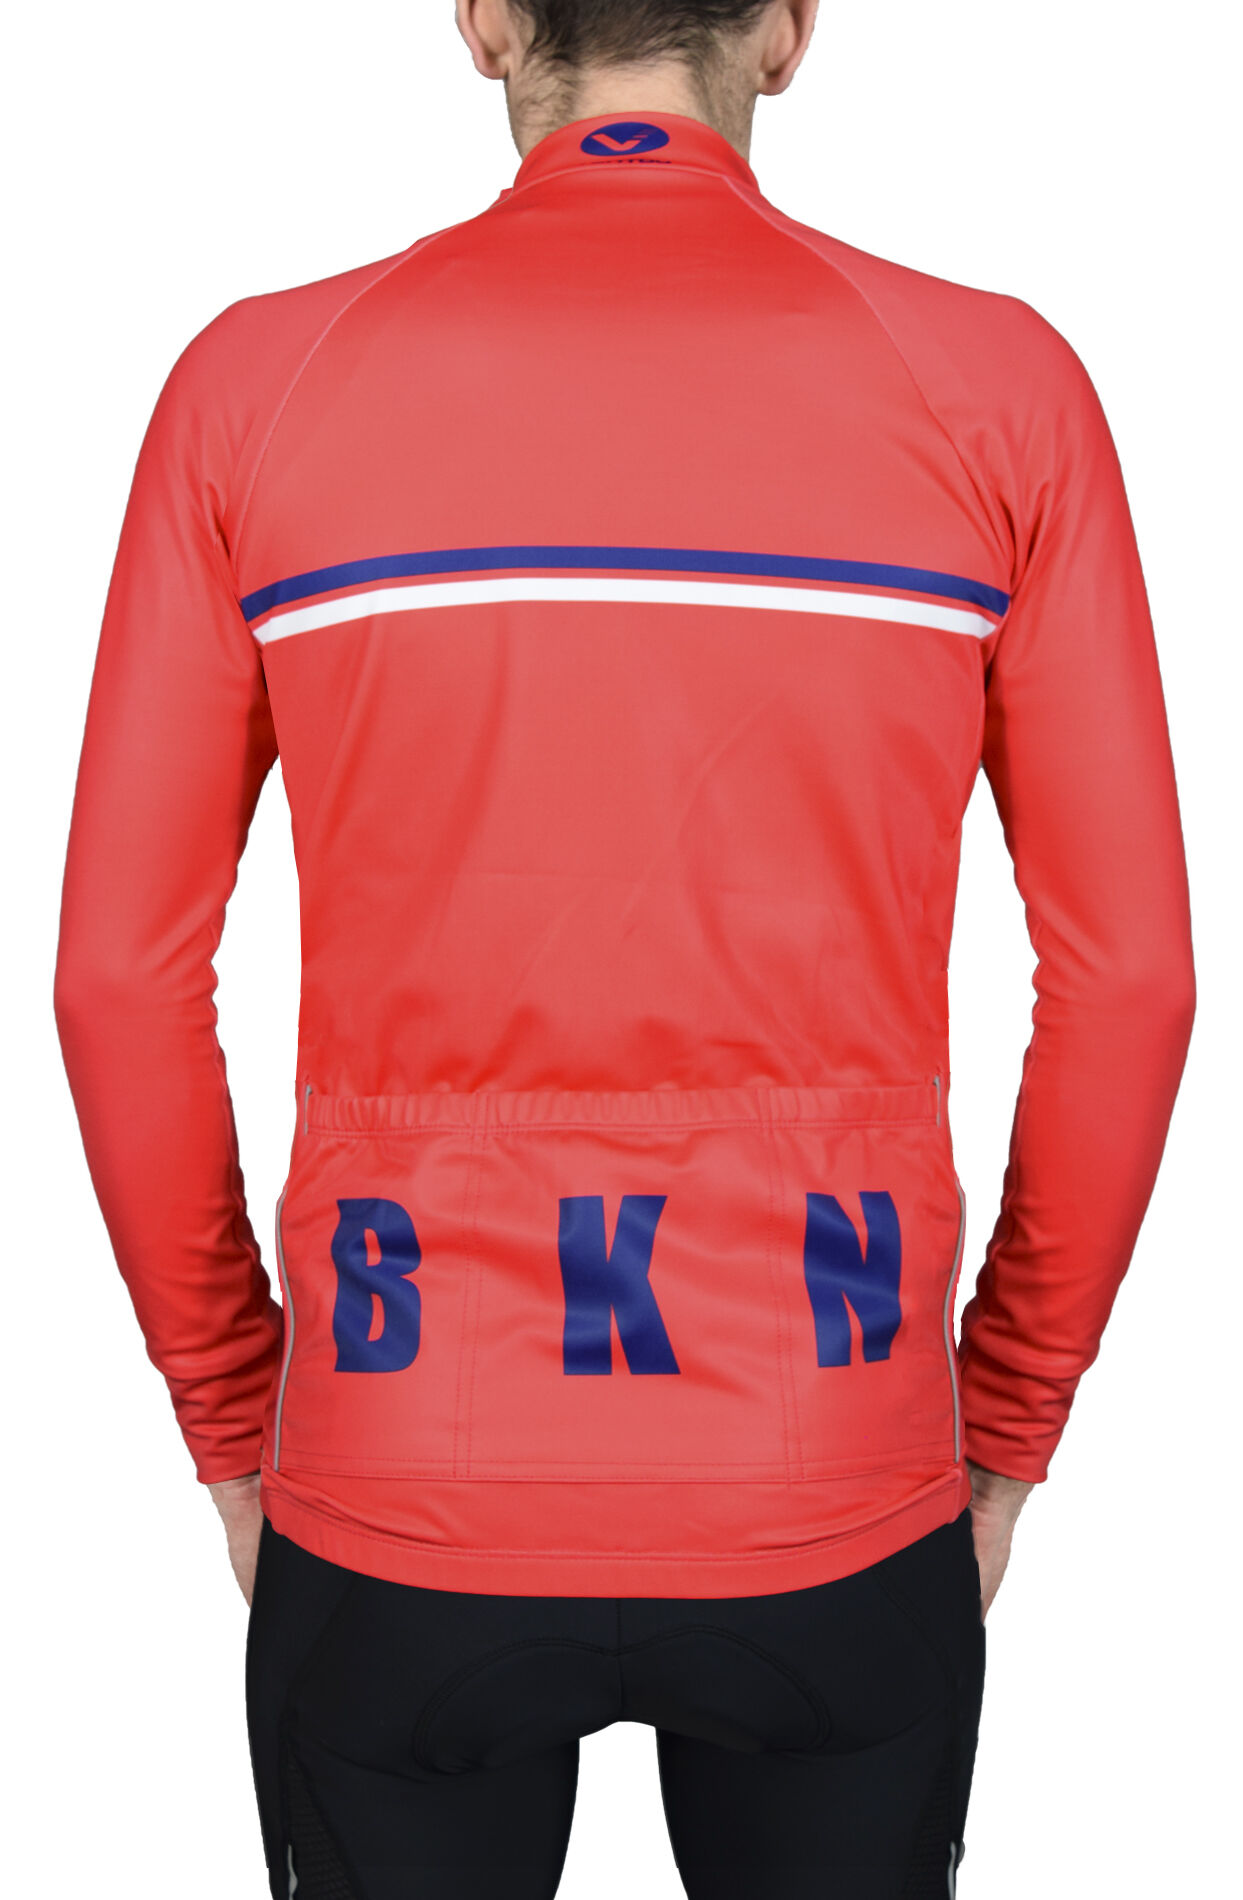 BKN Coral Jacket BACK